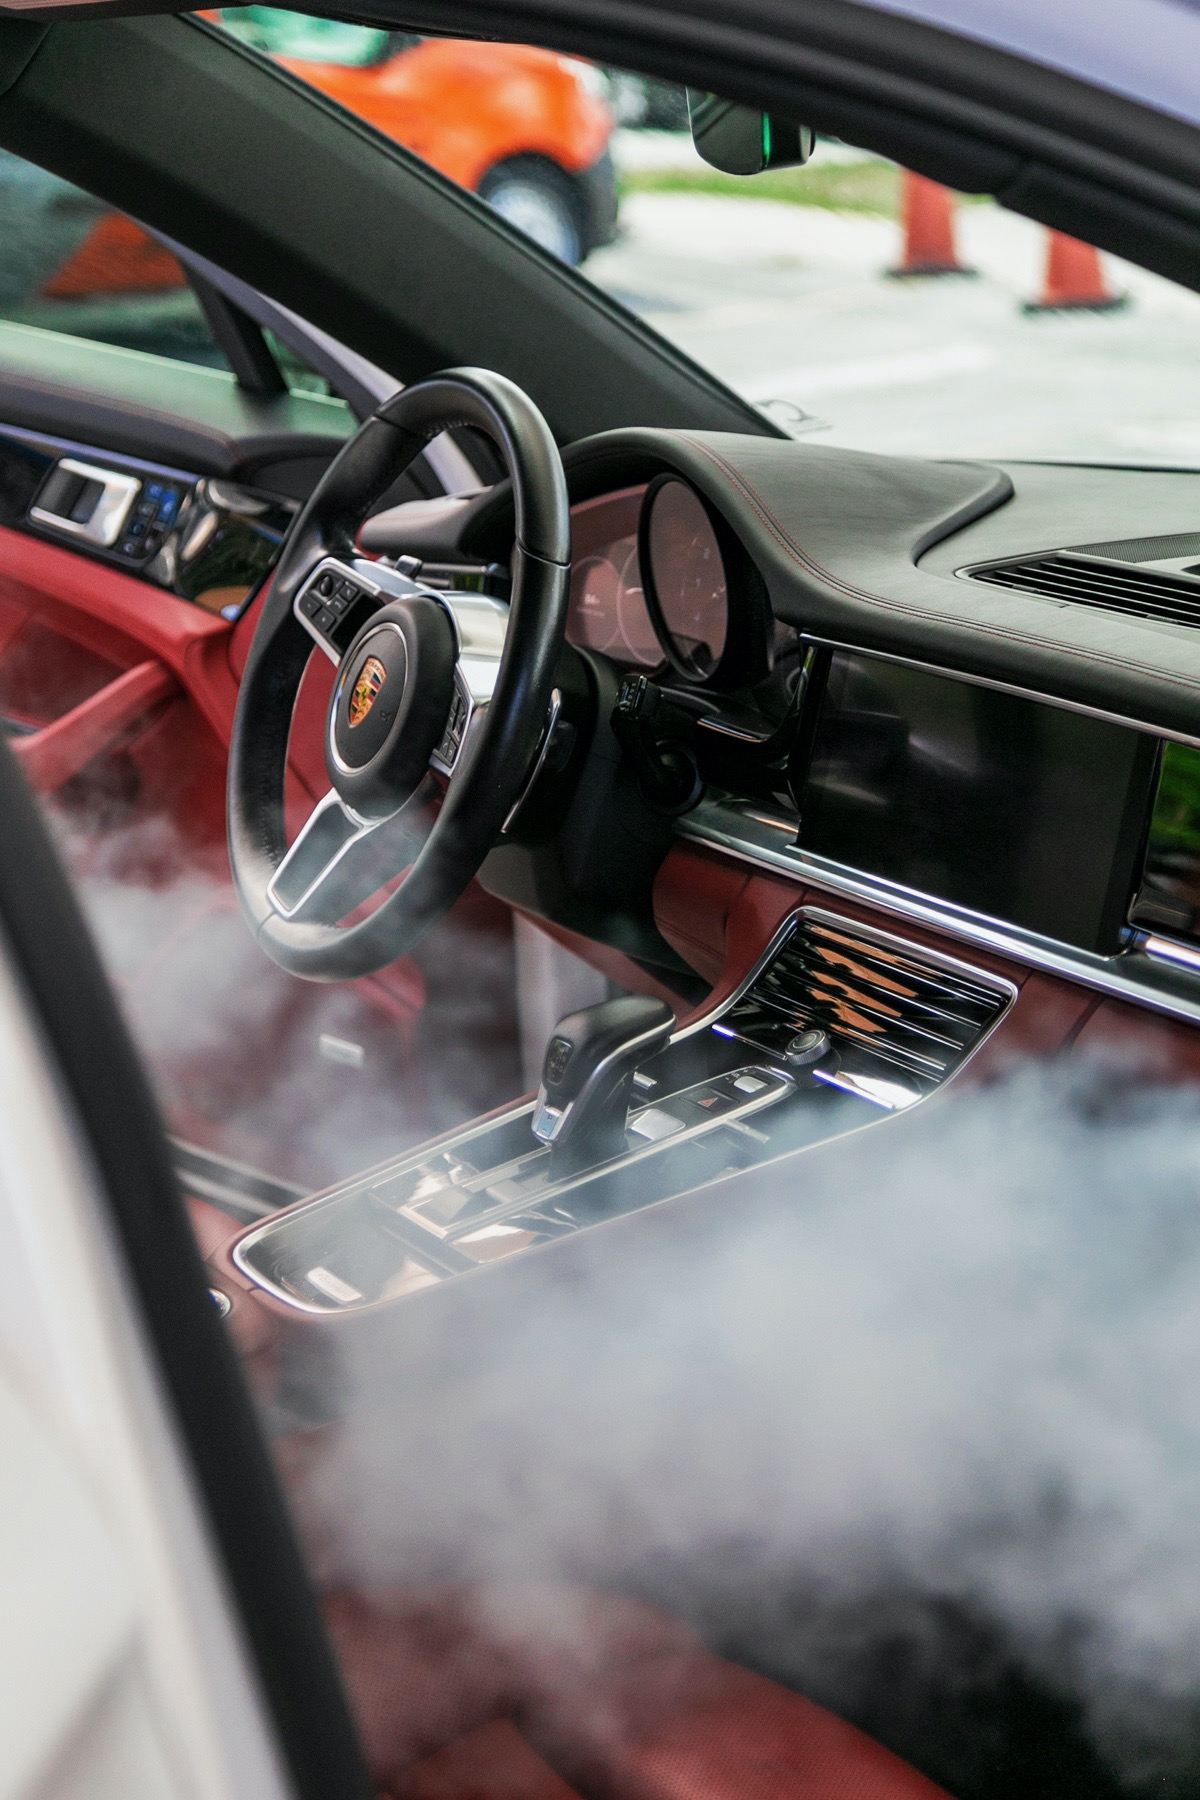 COVID sanitization services for cars in Miami